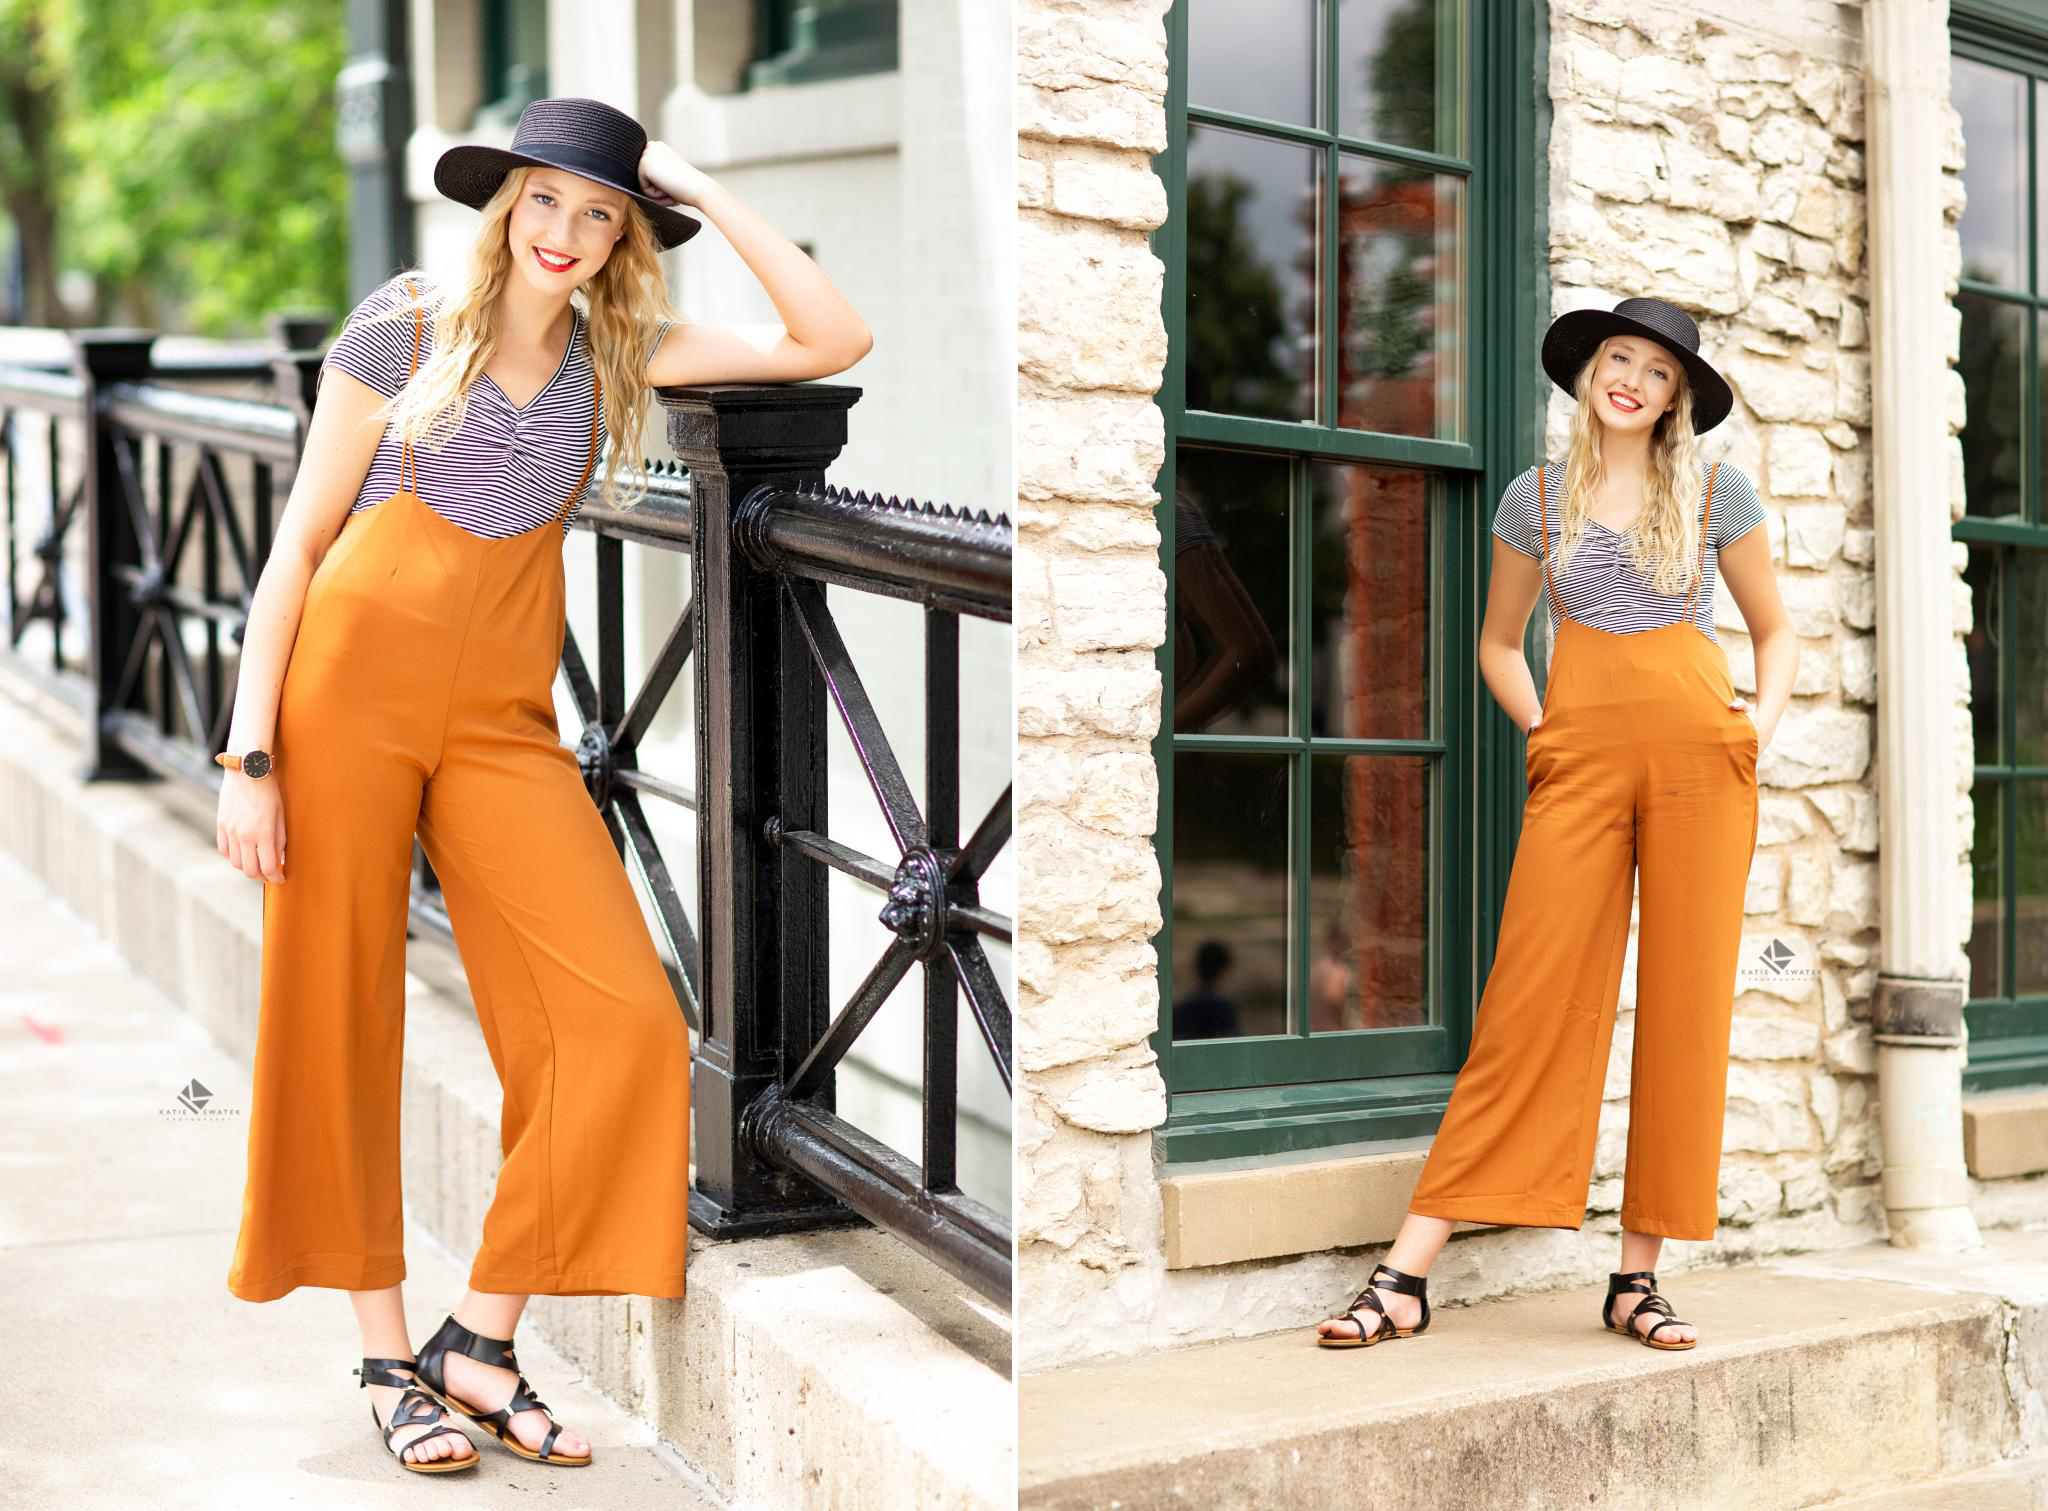 blonde senior in a black sun hat and yellow jumper overalls posing in an urban setting in Omaha Nebraska